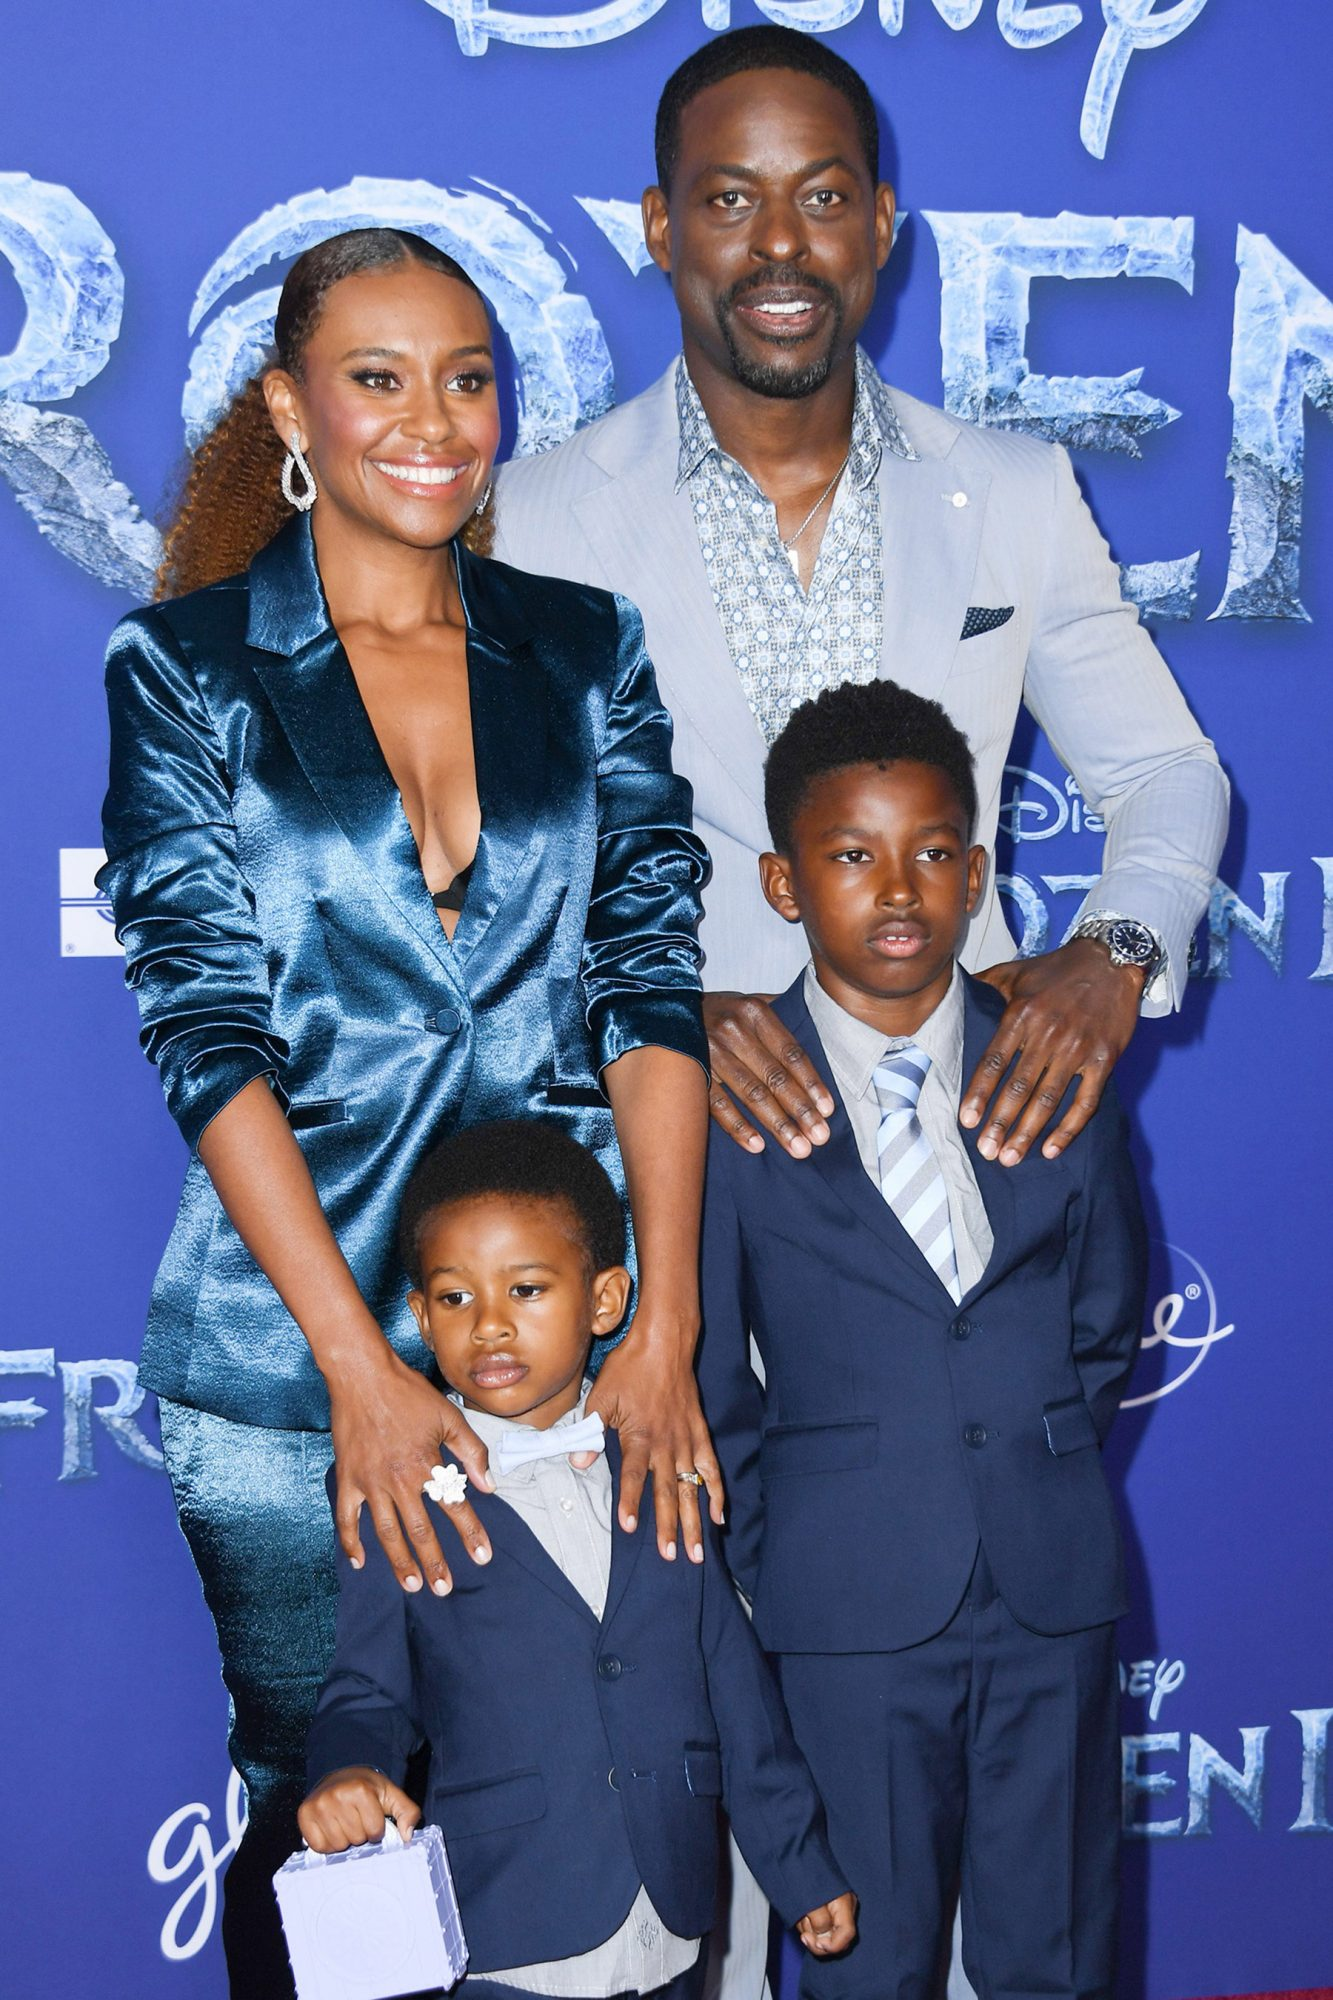 Sterling K. Brown (Mattias), Ryan Michelle Bathe, and their two sons Andrew (right) and Amare (left)